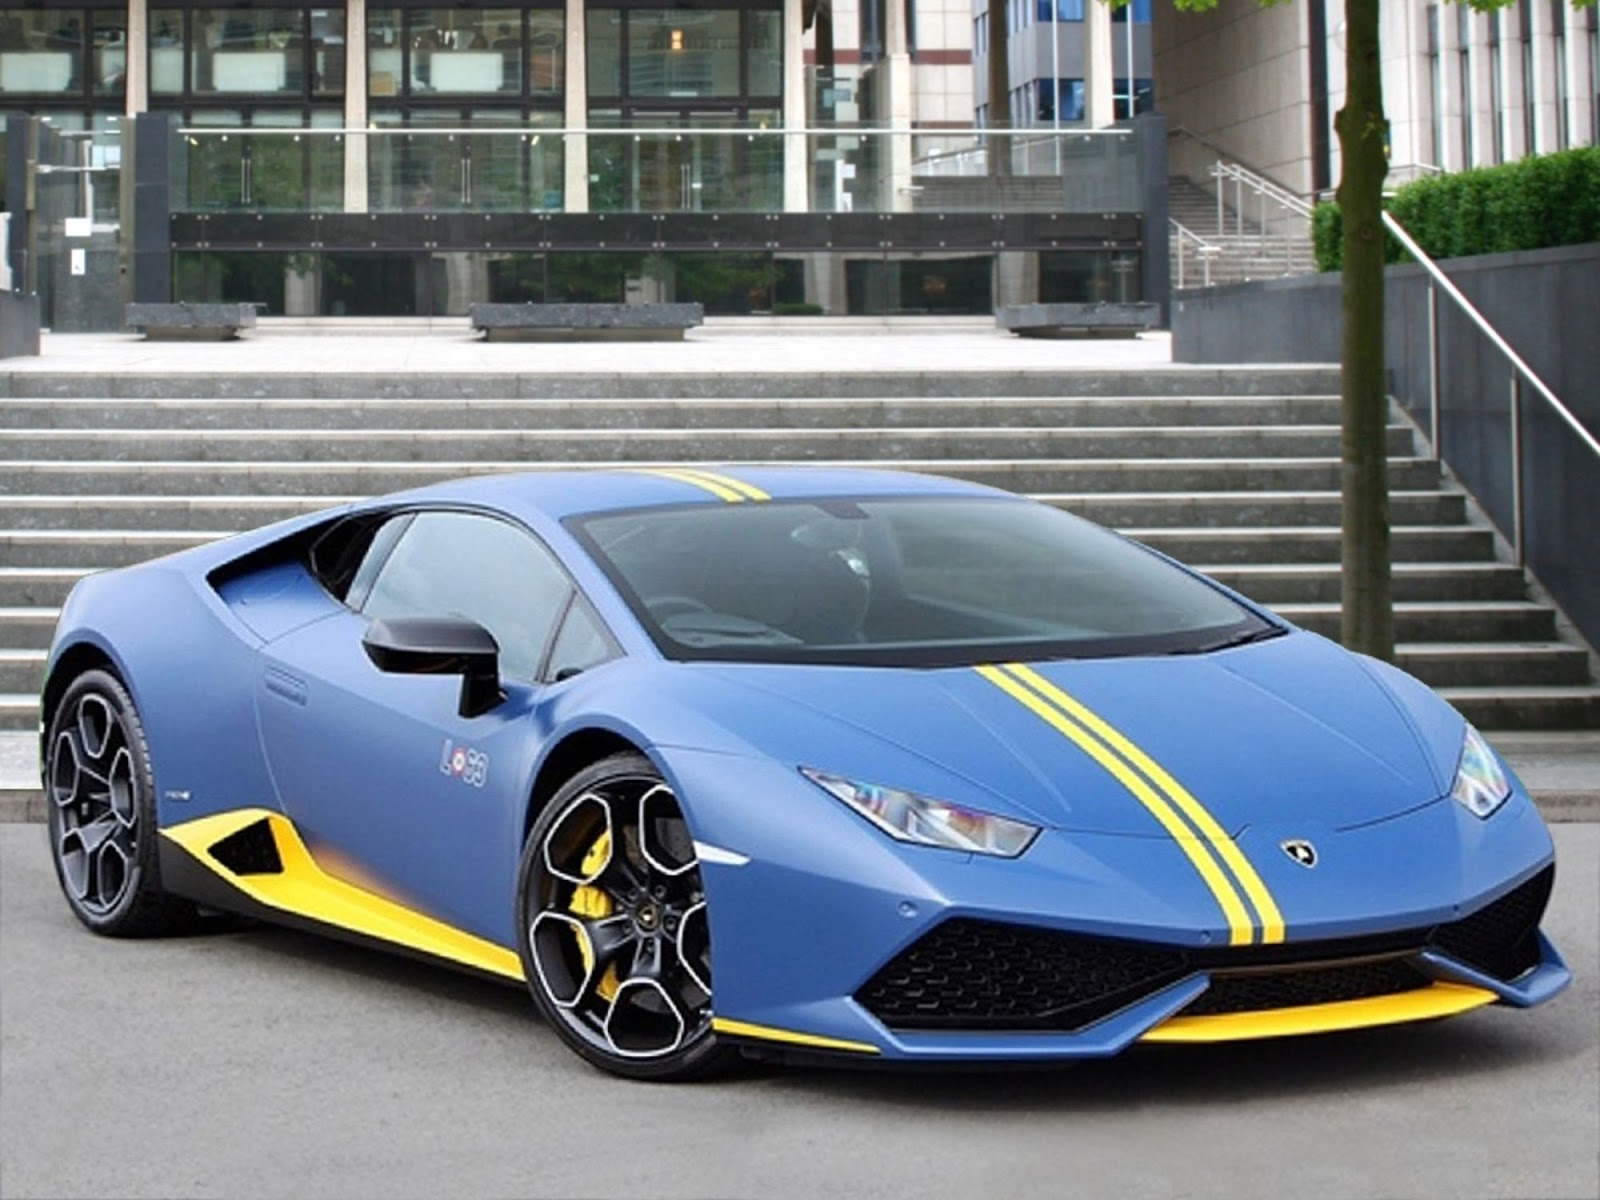 Lamborghini Made Just 250 Special Huracan Avio Editions We Found 2 For Sale In London Carscoops